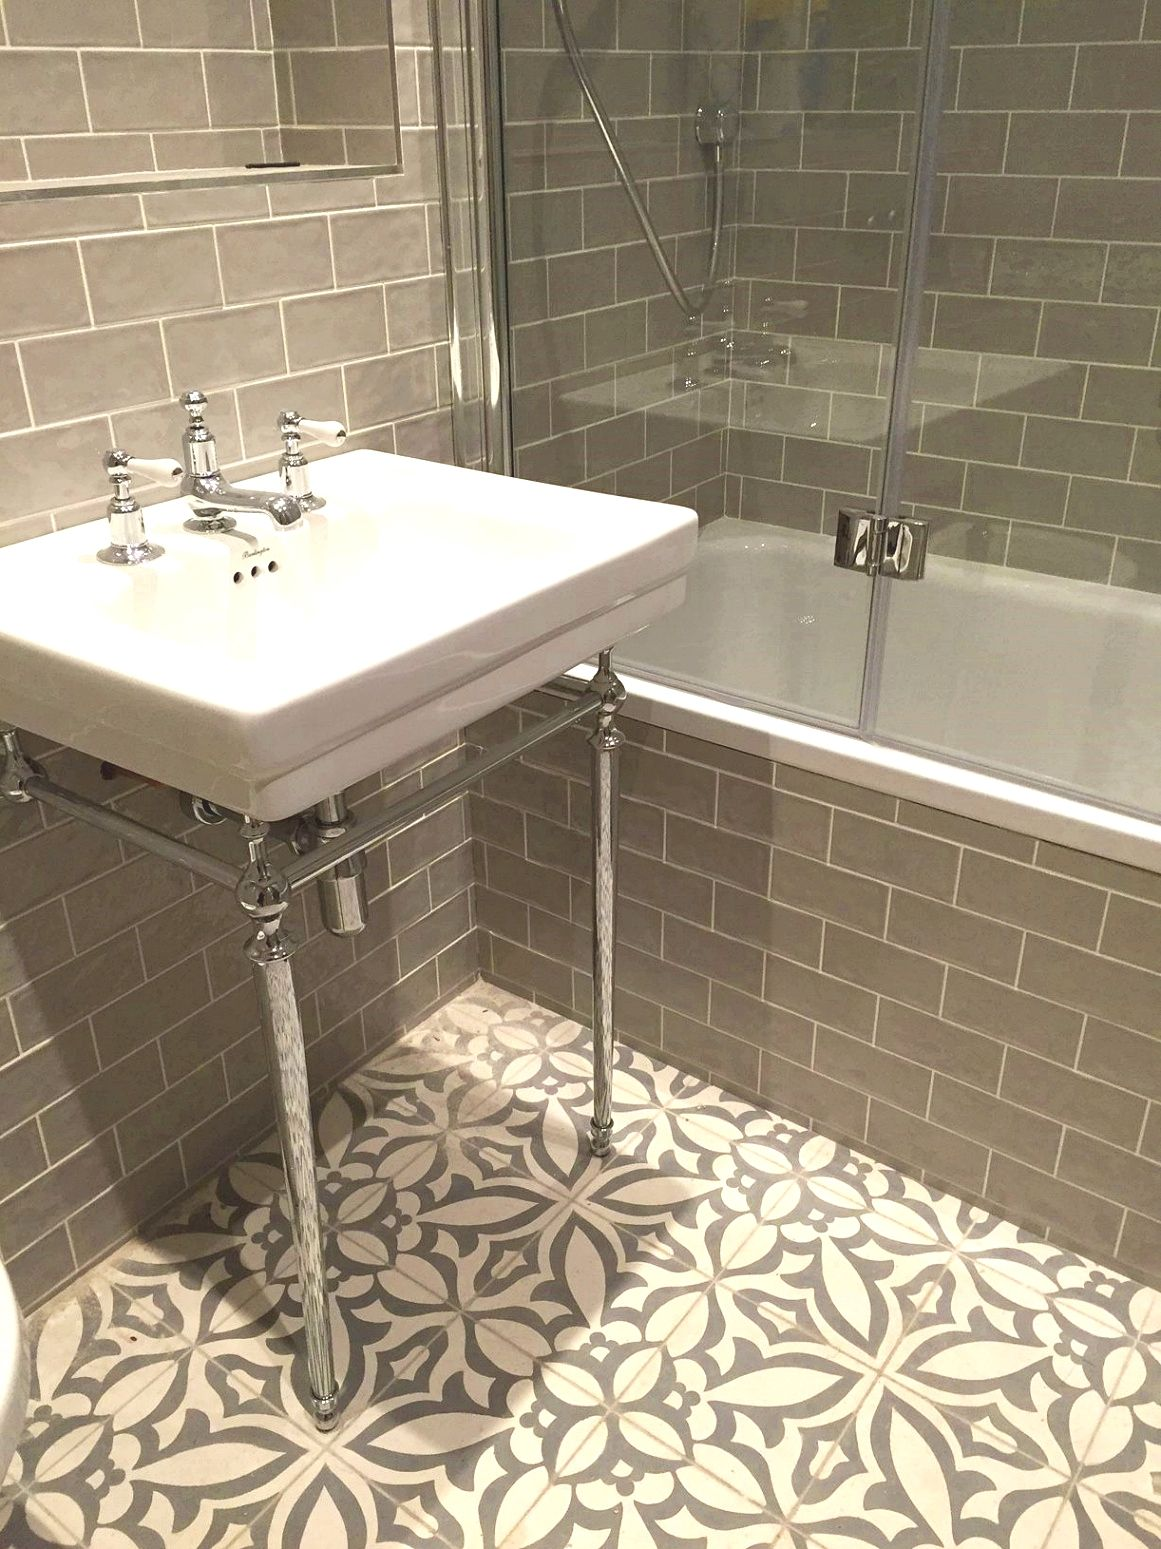 4 Things That Will Help Lower The Cost Of Renovating Bathroom Appearance Jessi S Home Decor Vintage Bathroom Tile Bathroom Tile Designs Bathroom Floor Tiles